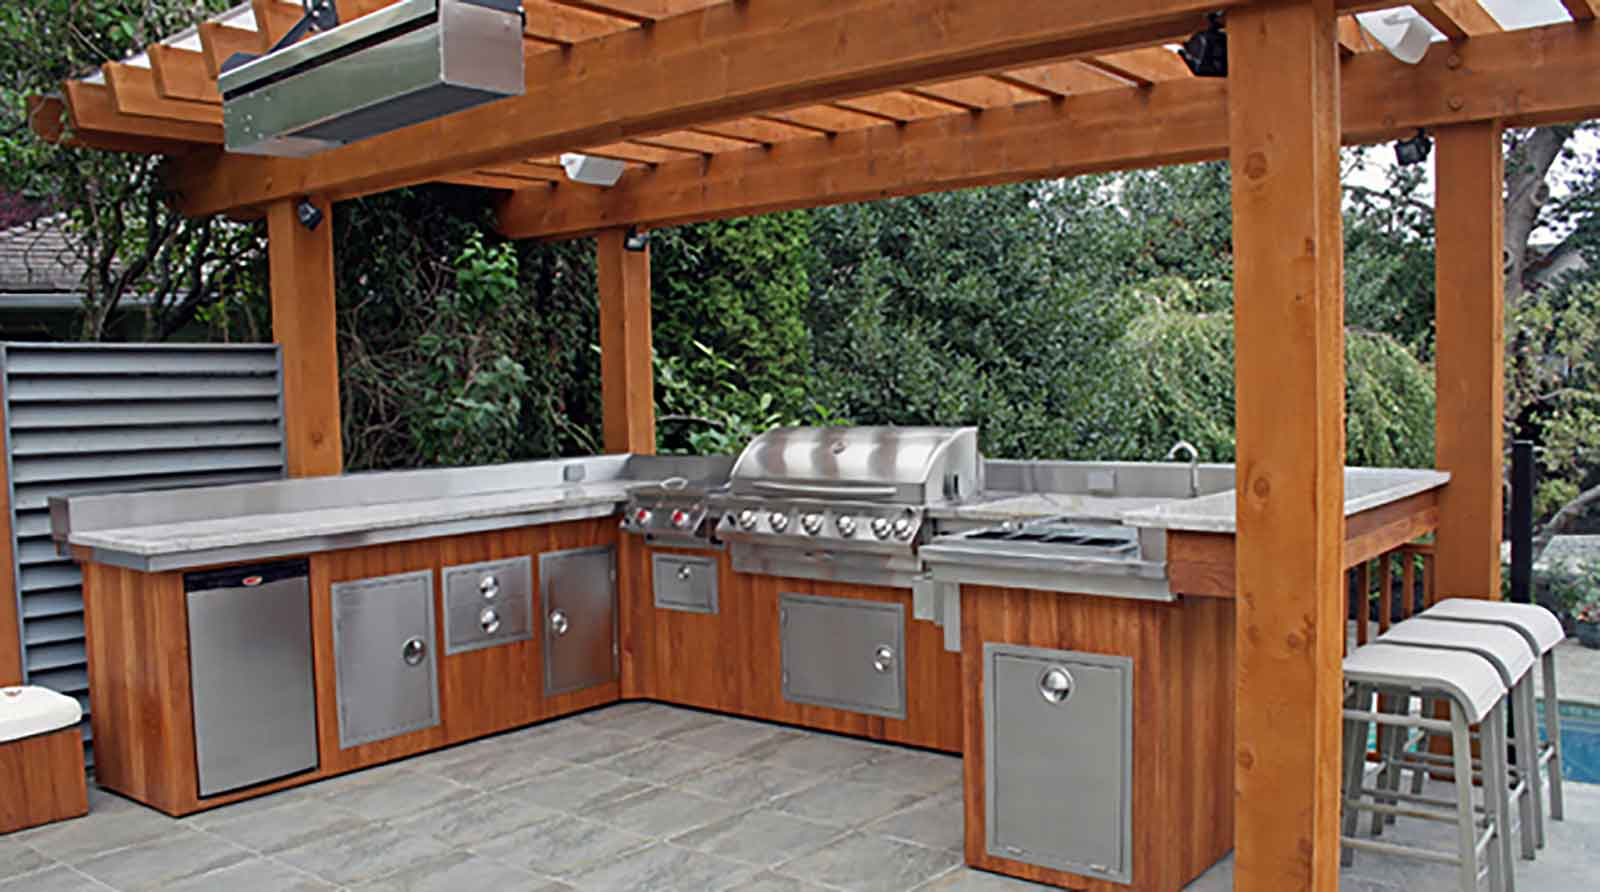 custom designed outdoor kitchens azuro concepts. Black Bedroom Furniture Sets. Home Design Ideas